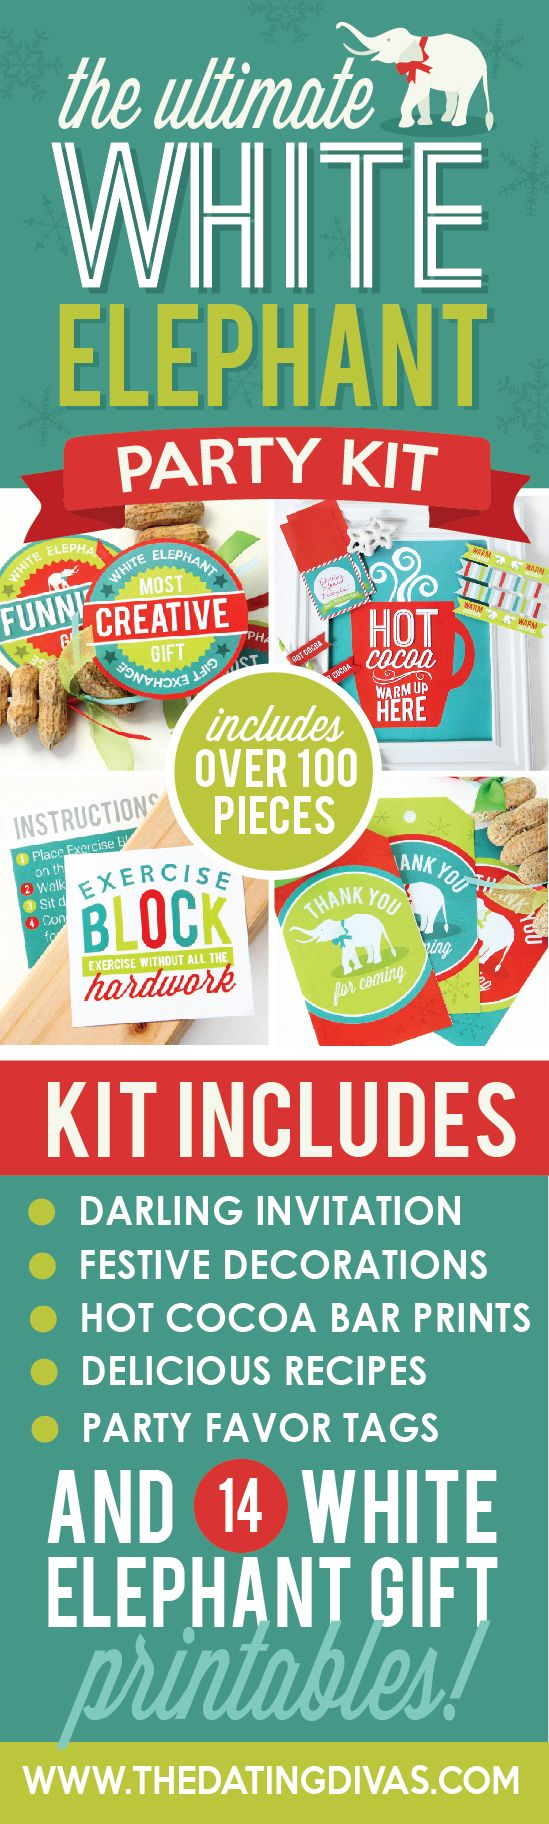 Plan the ultimate white elephant party with these darling printables-- the DIY gift ideas are hilarious! www.TheDatingDivas.com